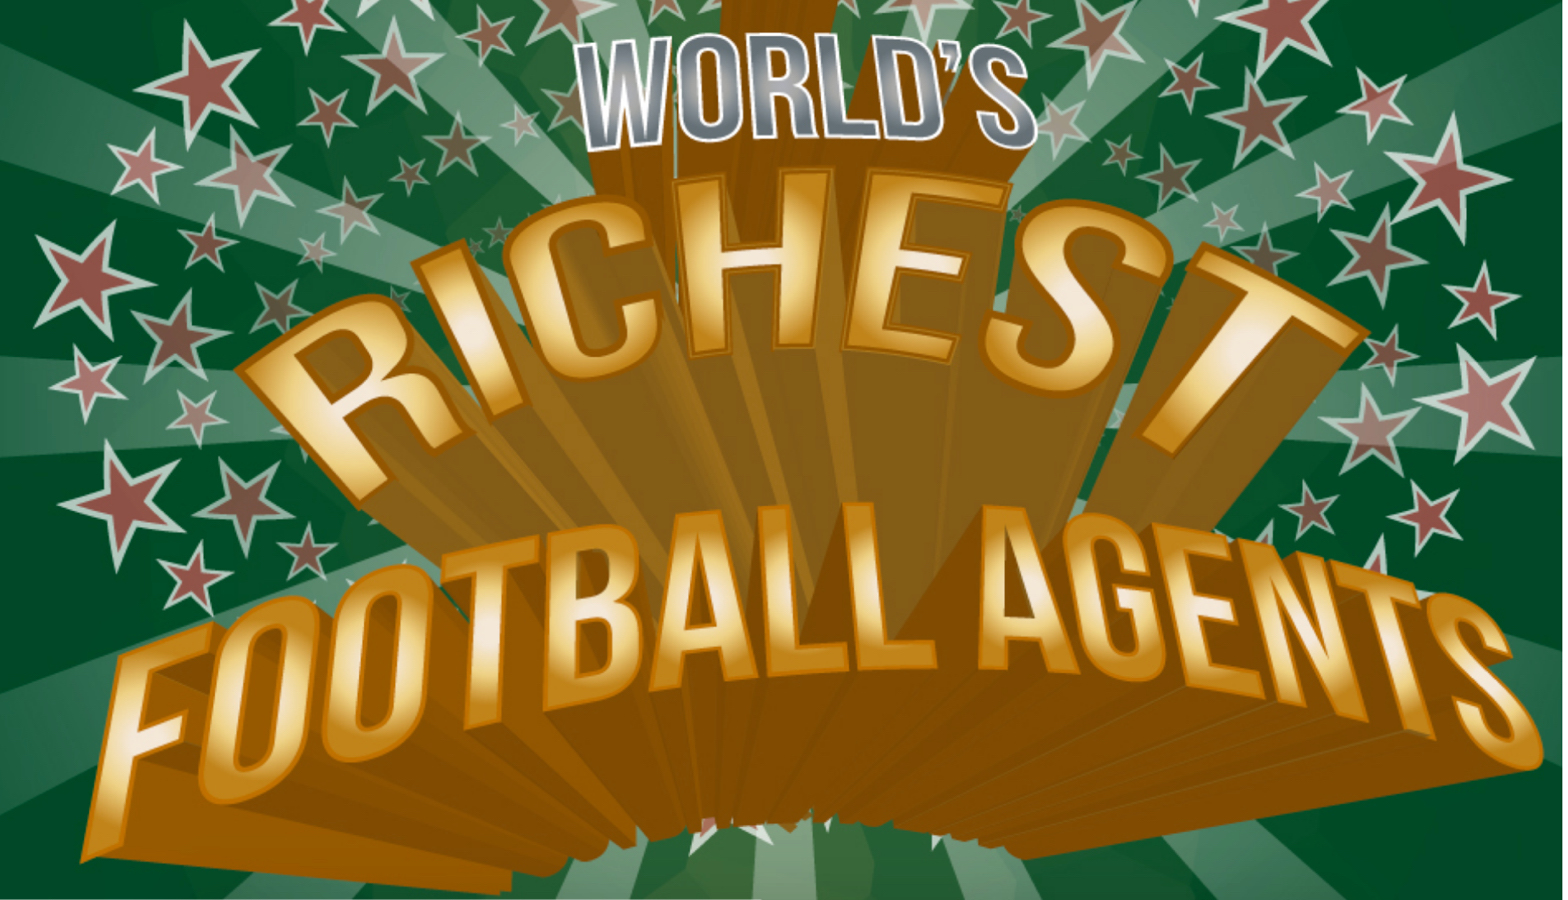 Check Out This Outstanding Infographic Of Football's Richest Agents Best 5-A-Sides